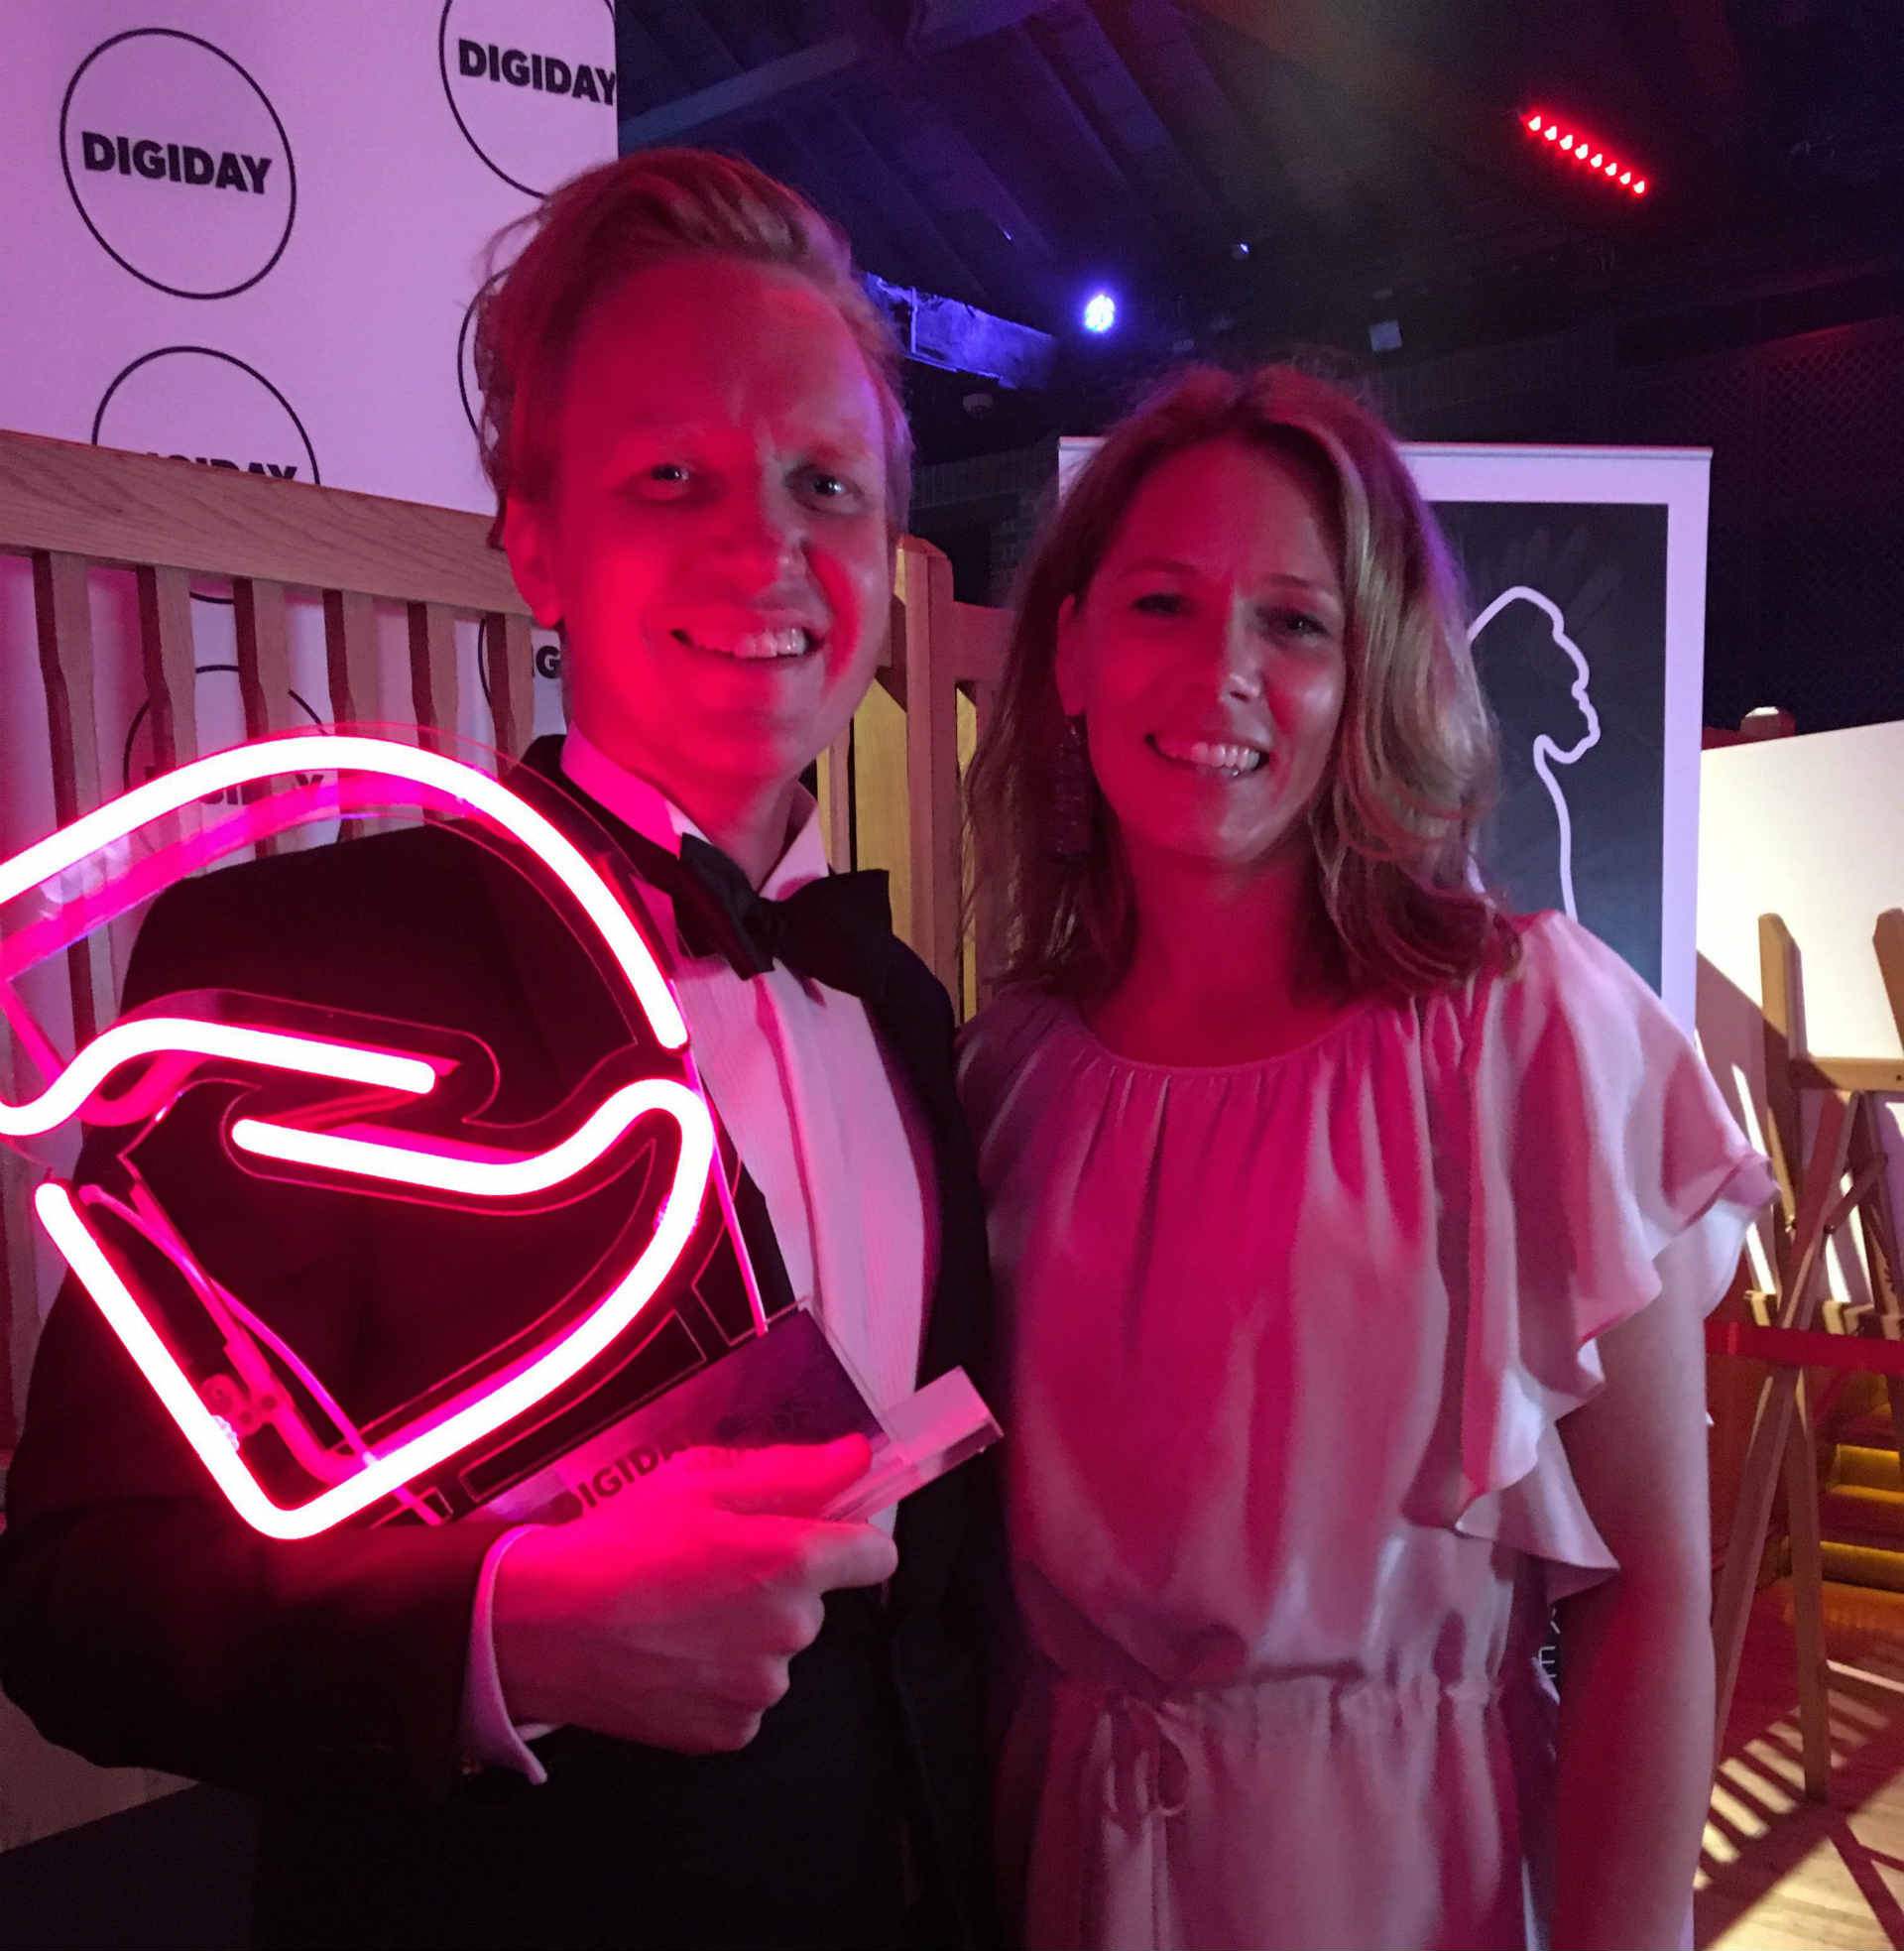 Digiday awards winner picture